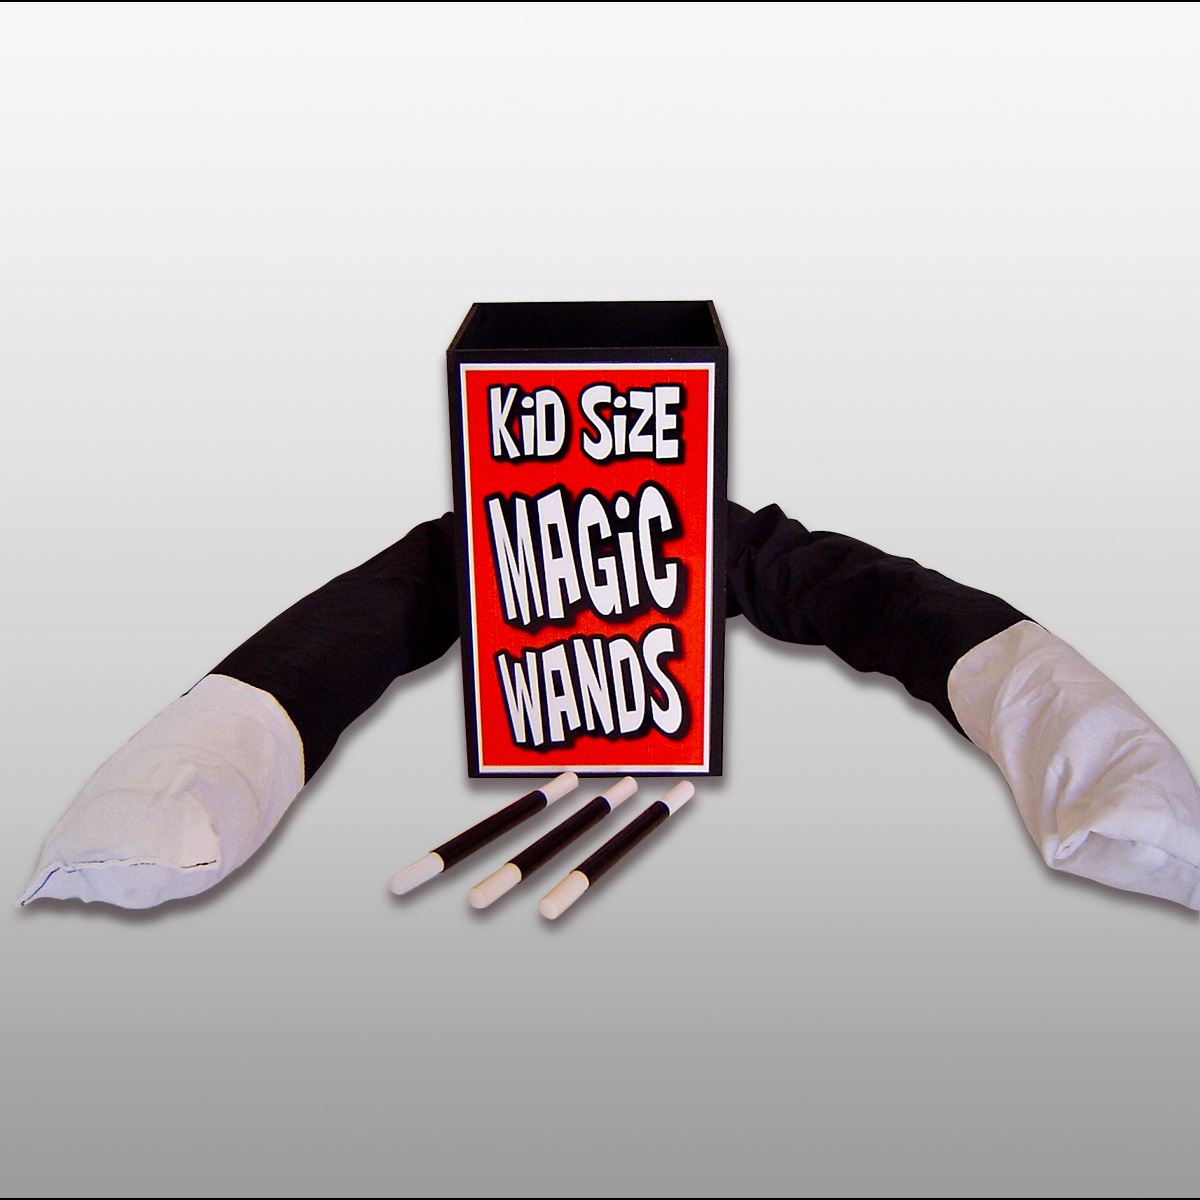 Kid Size Magic Wands